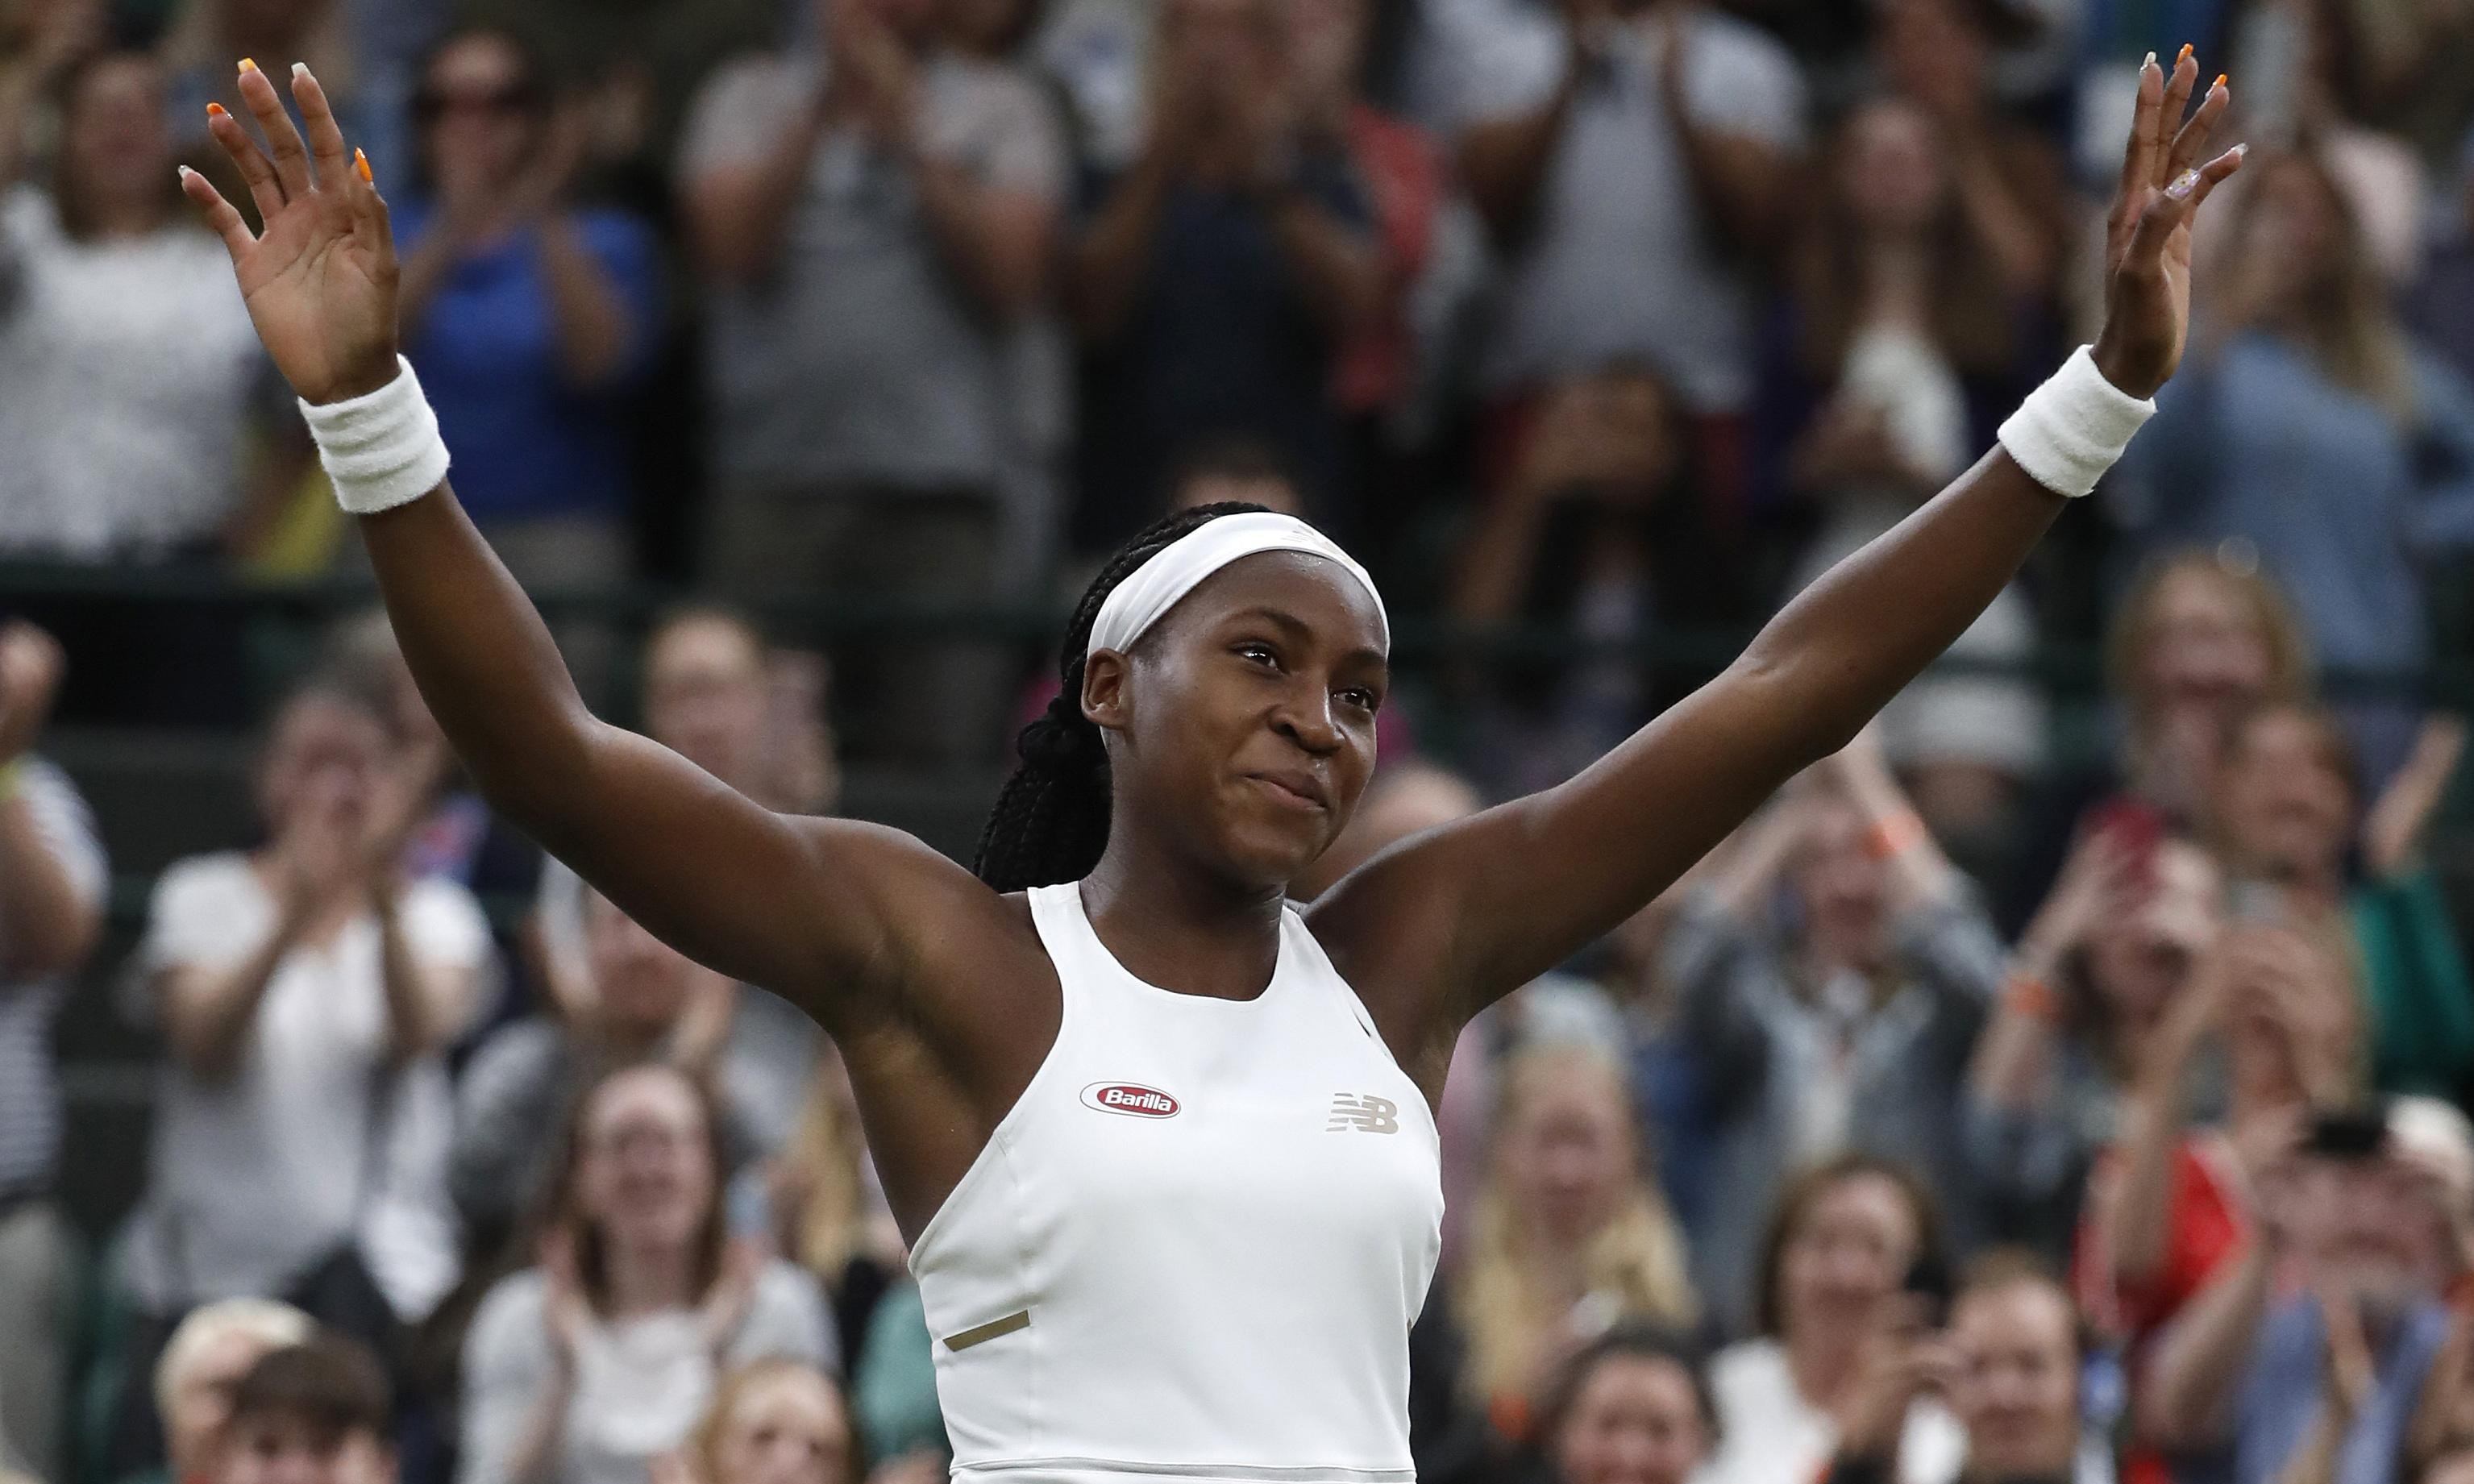 Teenage sensation Coco Gauff given wildcard for US Open